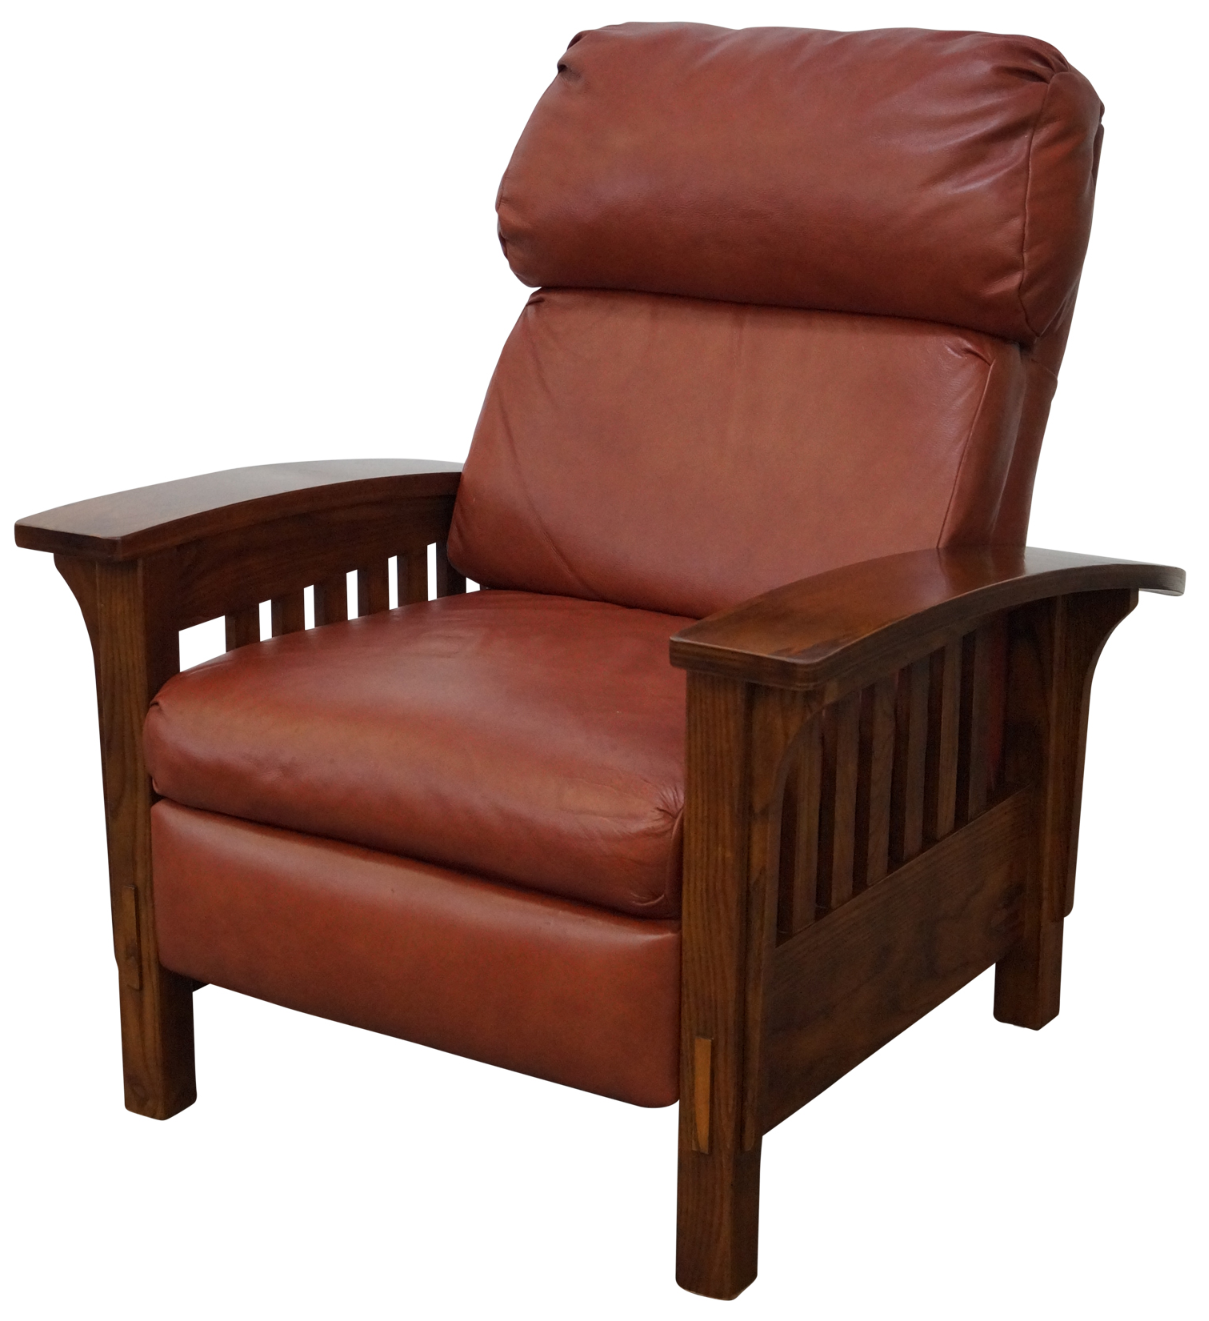 sc 1 st  Chairish : mission style recliner chair - islam-shia.org